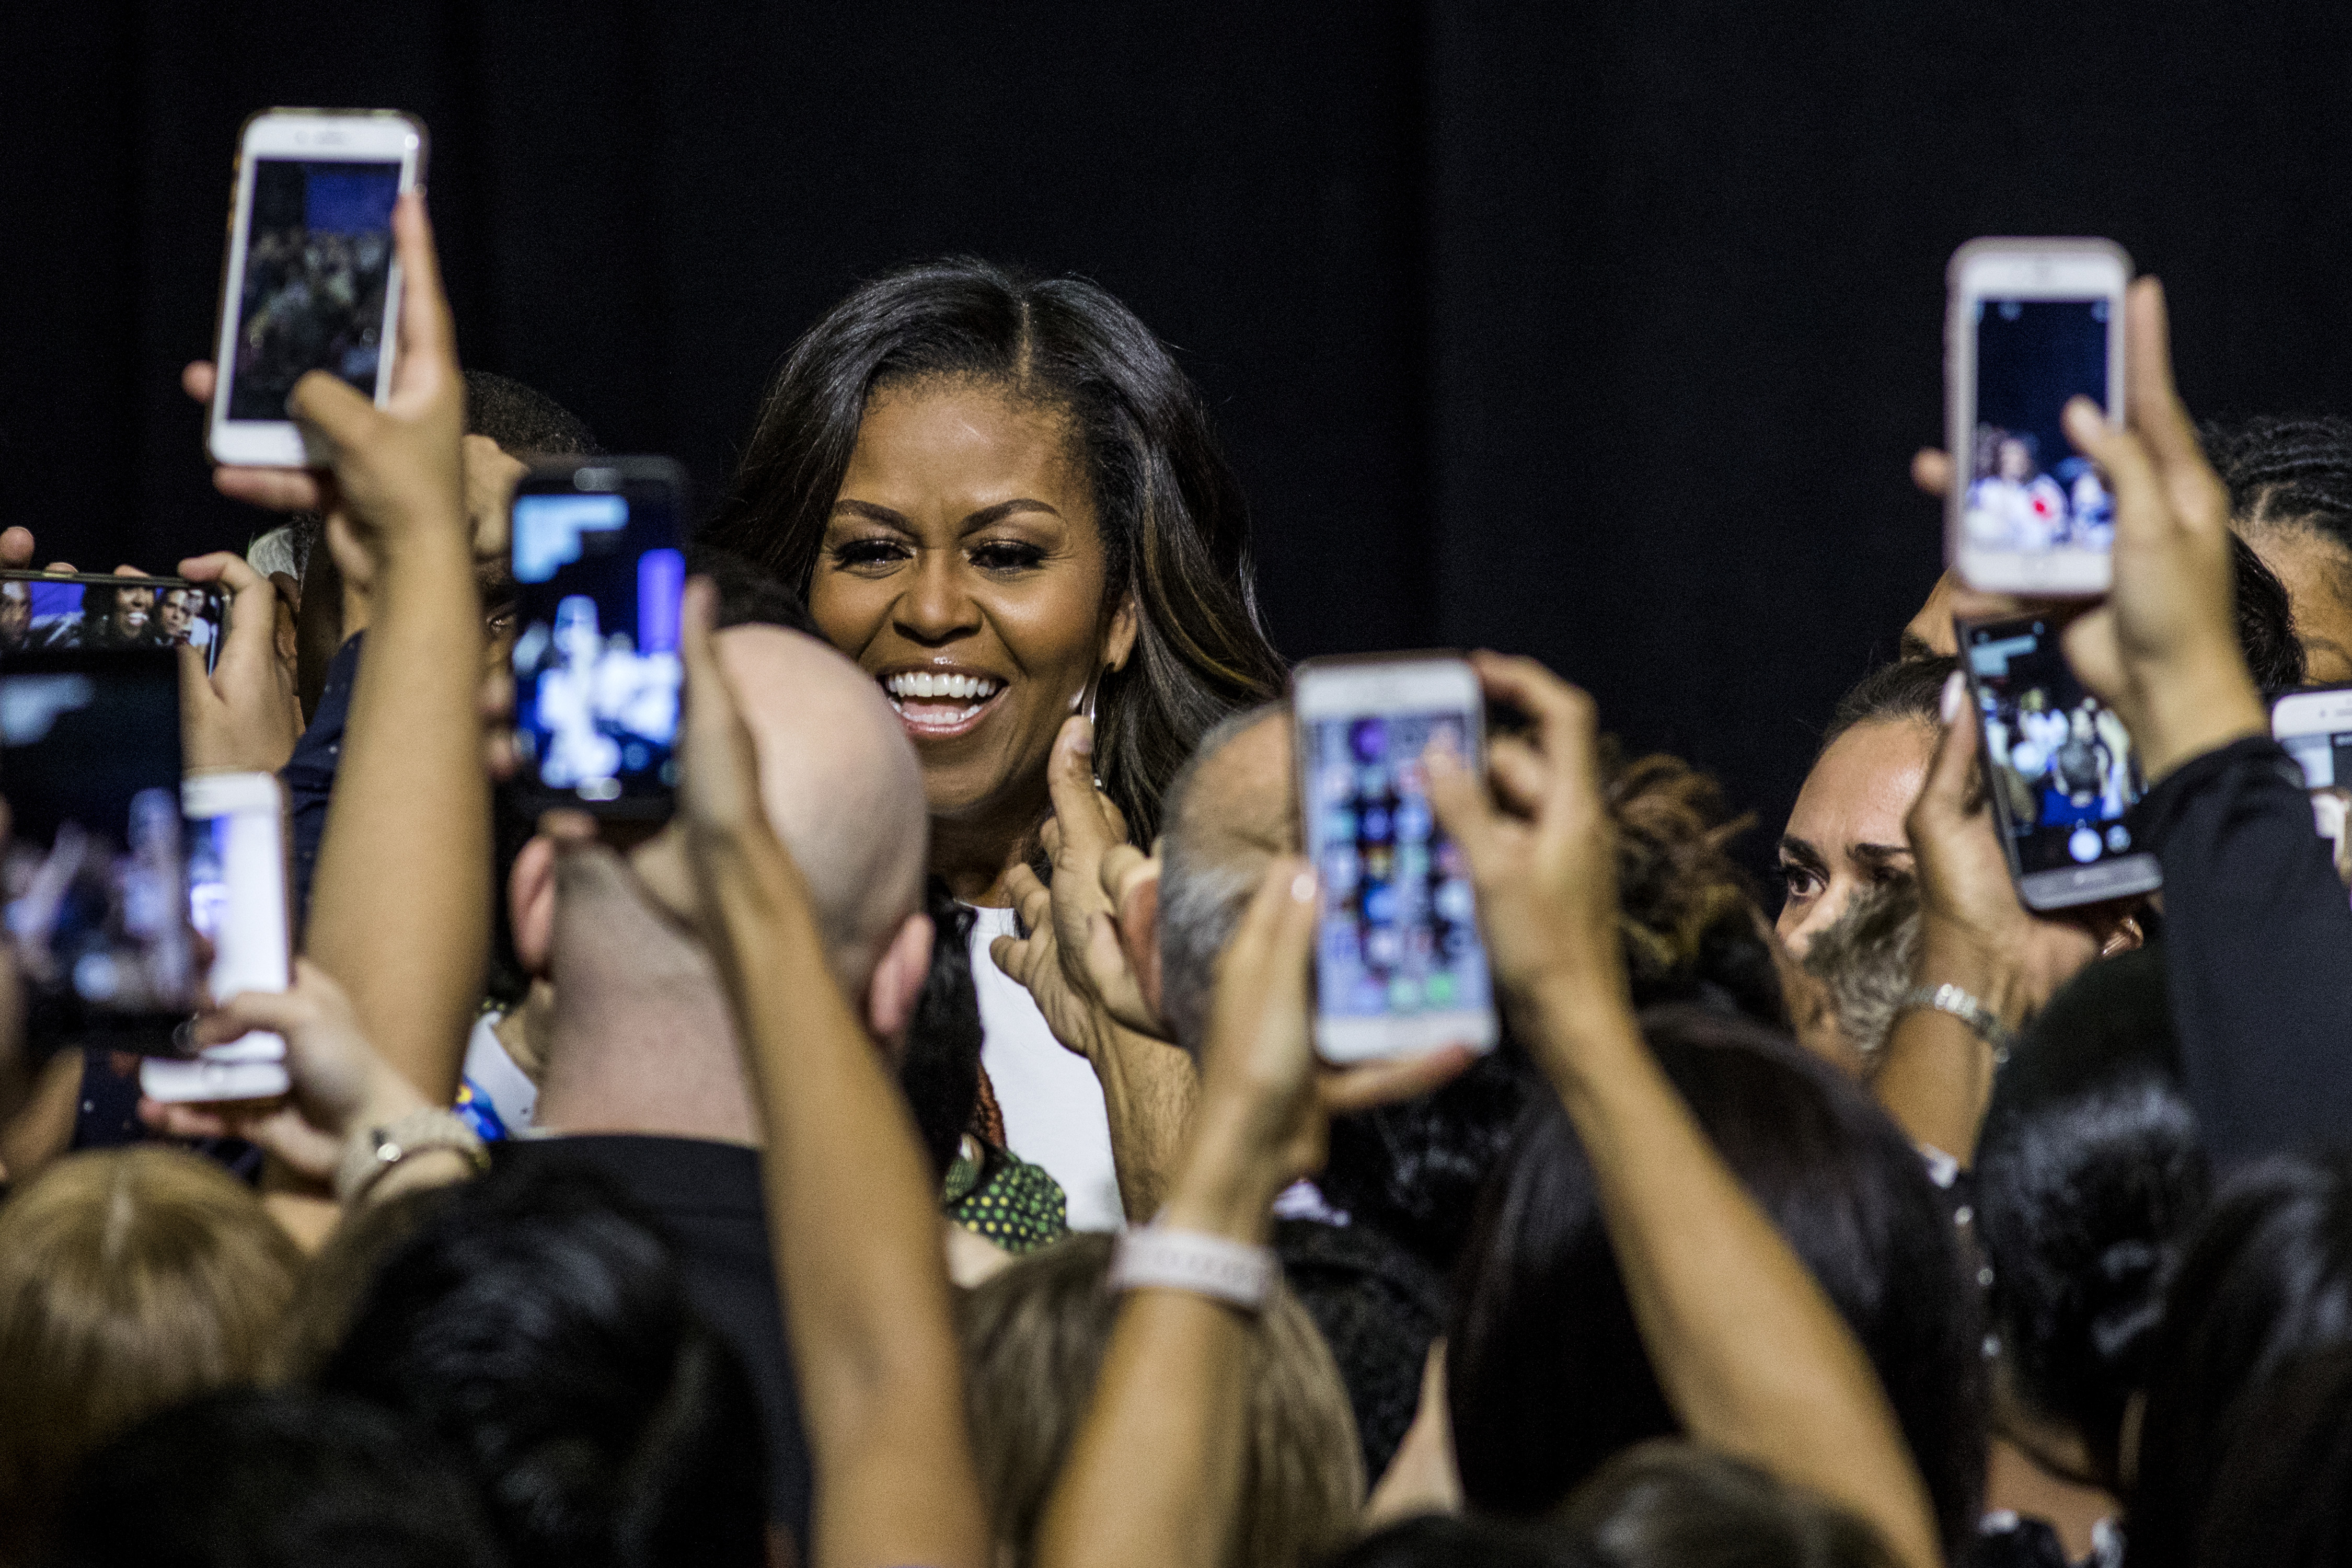 Former first lady Michelle Obama prepares to take the stage during a When We All Vote rally at Chaparral High School in Las Vegas. Obama, the founder and co-chairwoman of the organization, spoke at the September rally with over 2,000 volunteers and eligible voters present. MUST CREDIT: Photo for The Washington Post by Joe Buglewicz